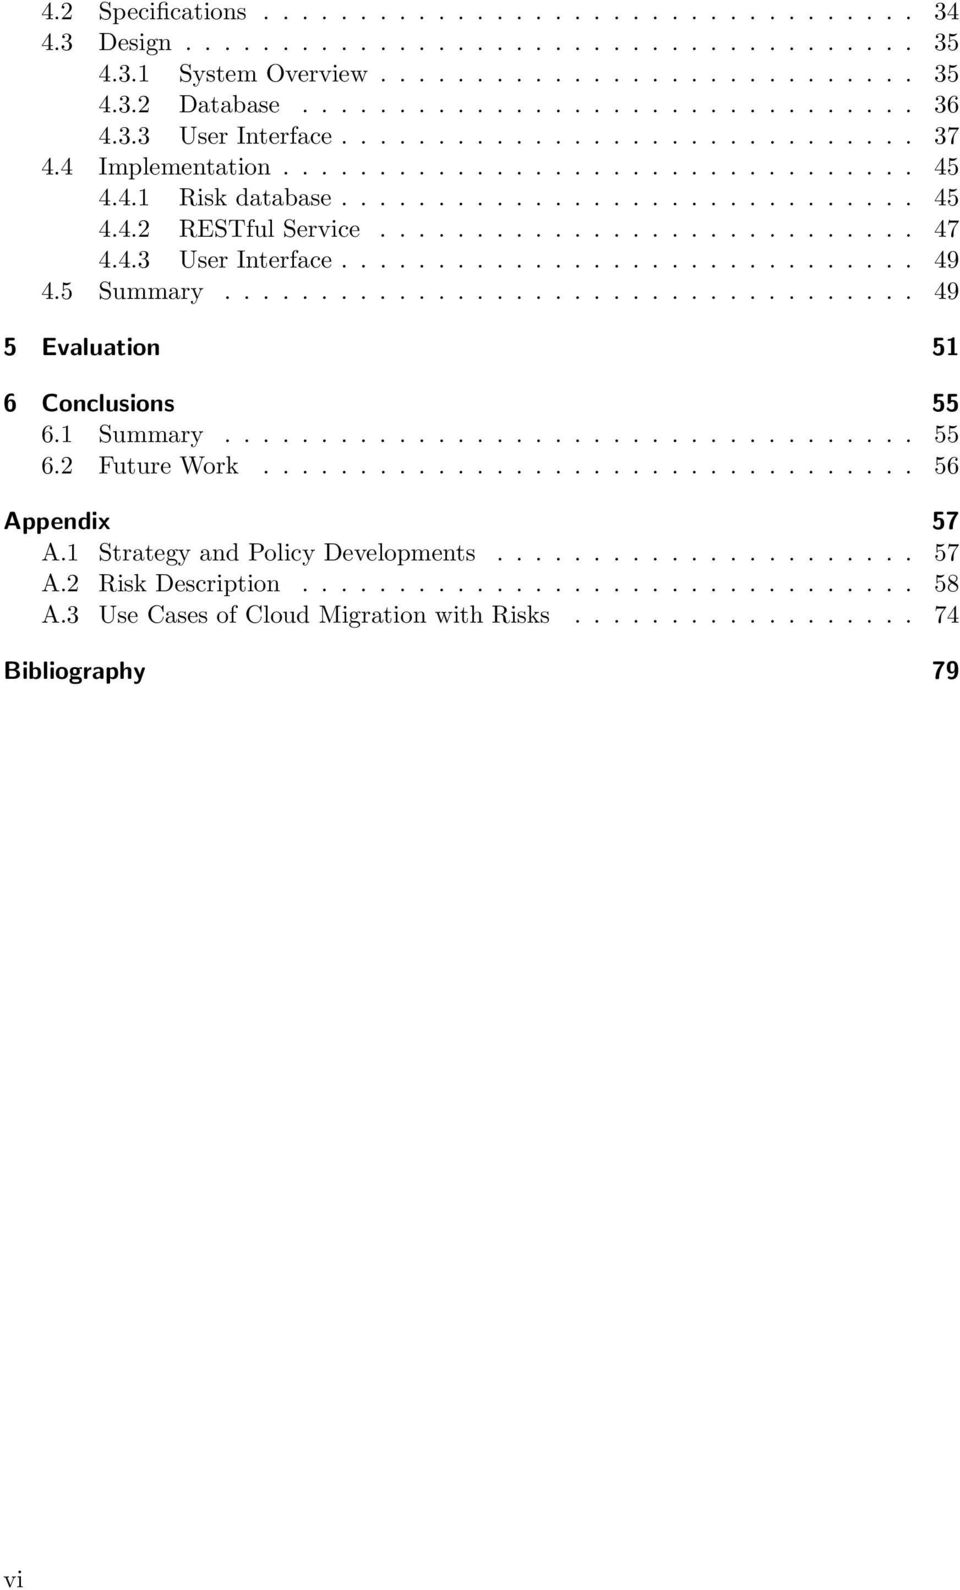 4.3 User Interface.............................. 49 4.5 Summary.................................... 49 5 Evaluation 51 6 Conclusions 55 6.1 Summary.................................... 55 6.2 Future Work.